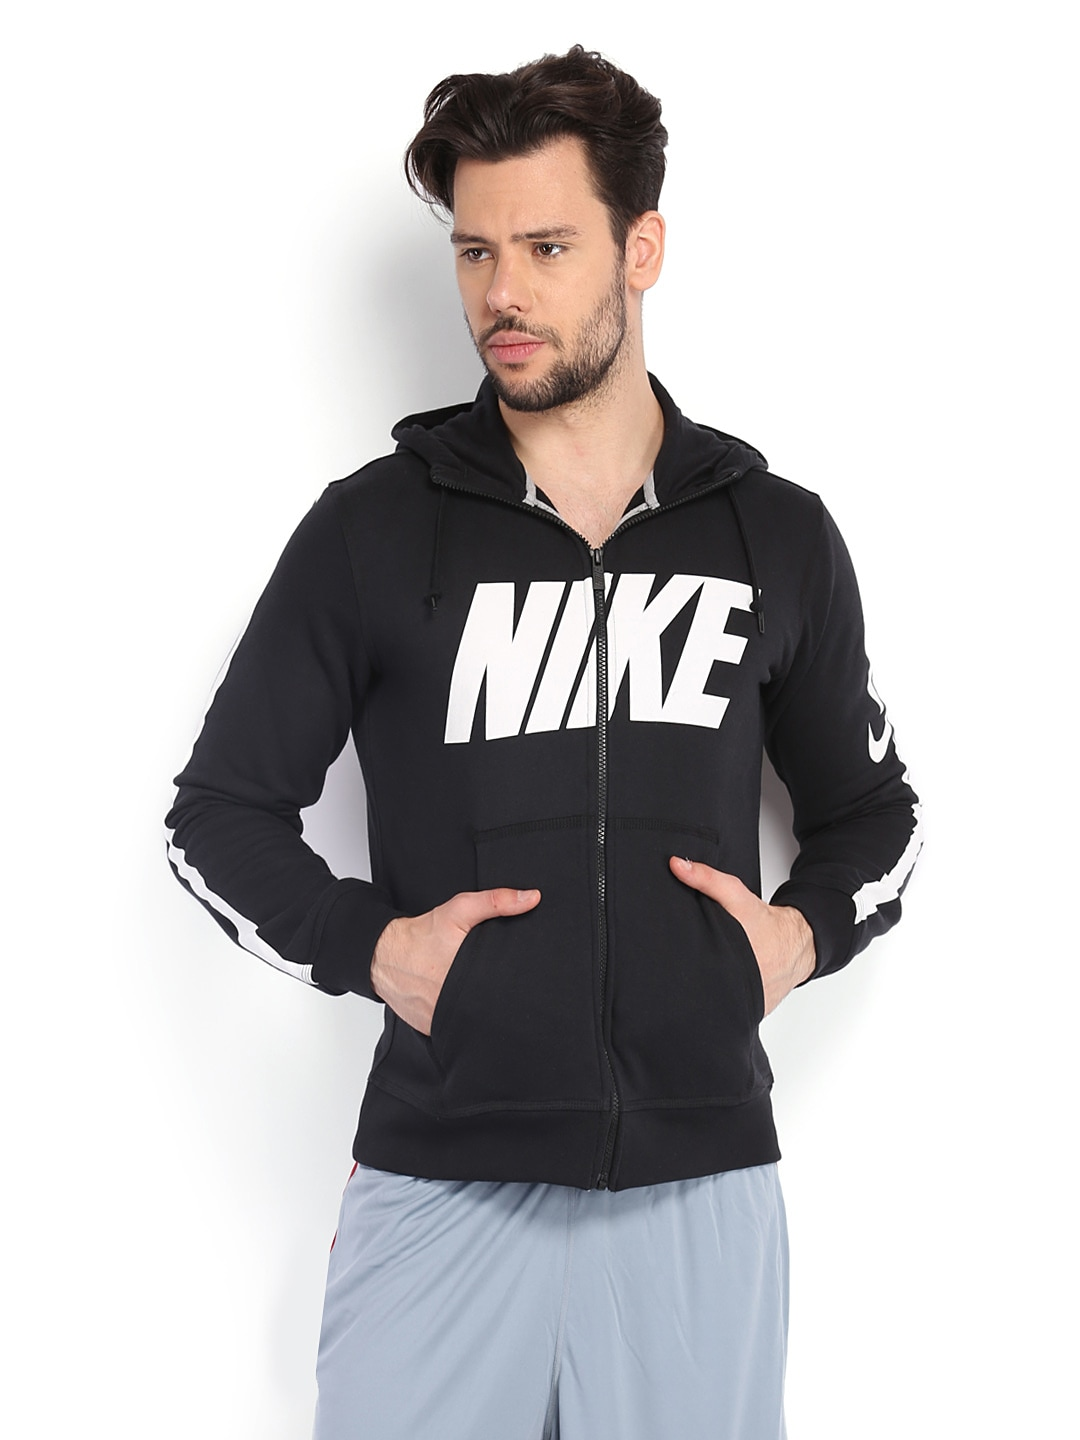 1417a41544ed Nike 614774-010 Jackets - Best Price in India